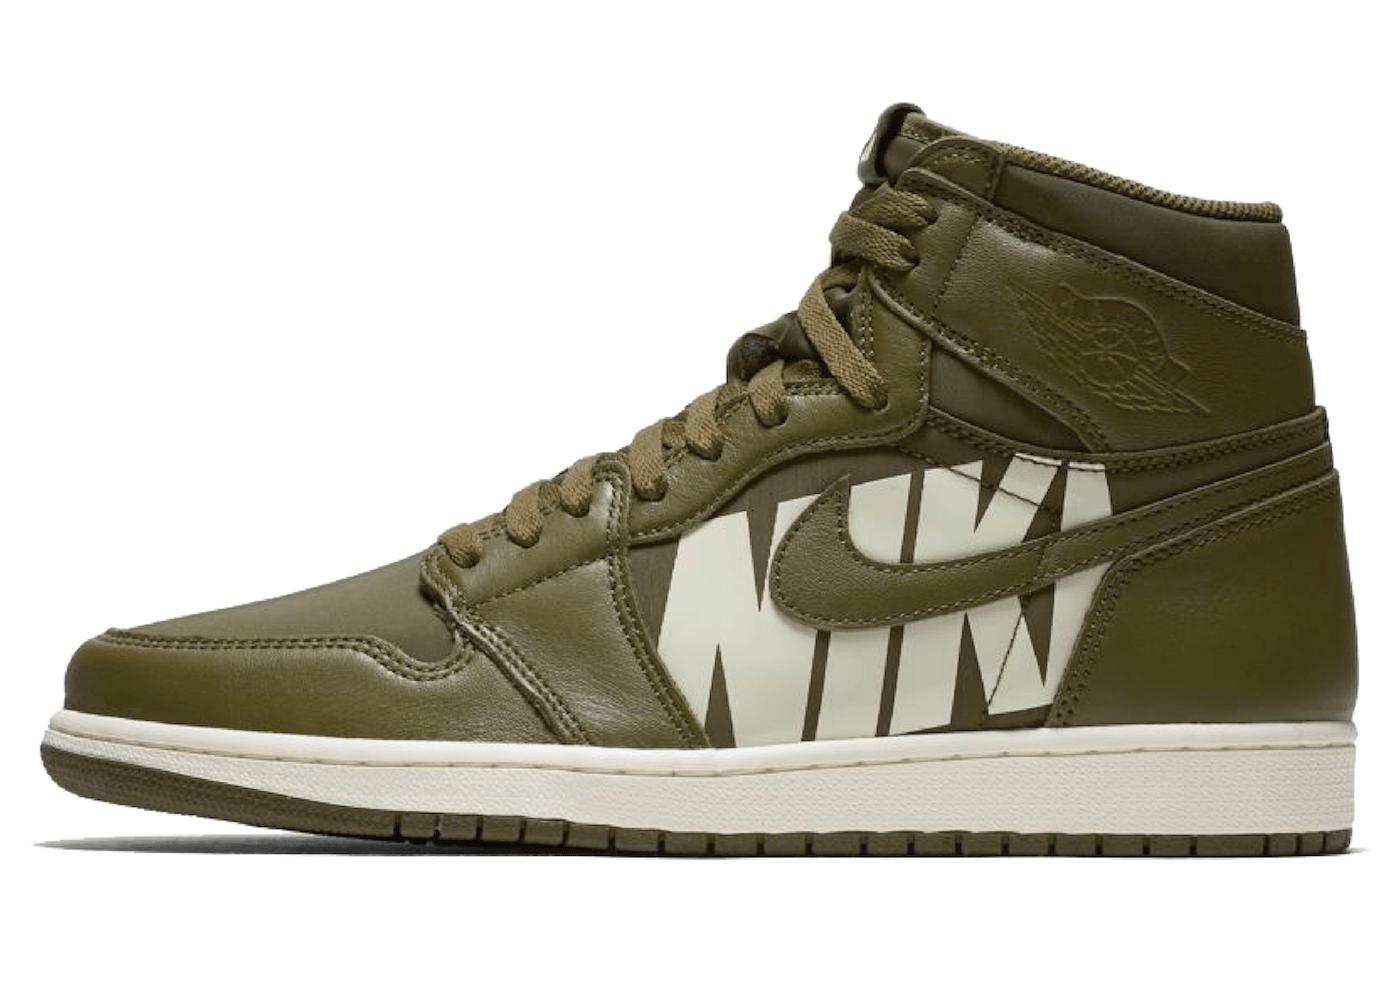 NIKE AIR JORDAN 1 RETRO HIGH OLIVE CANVASの写真